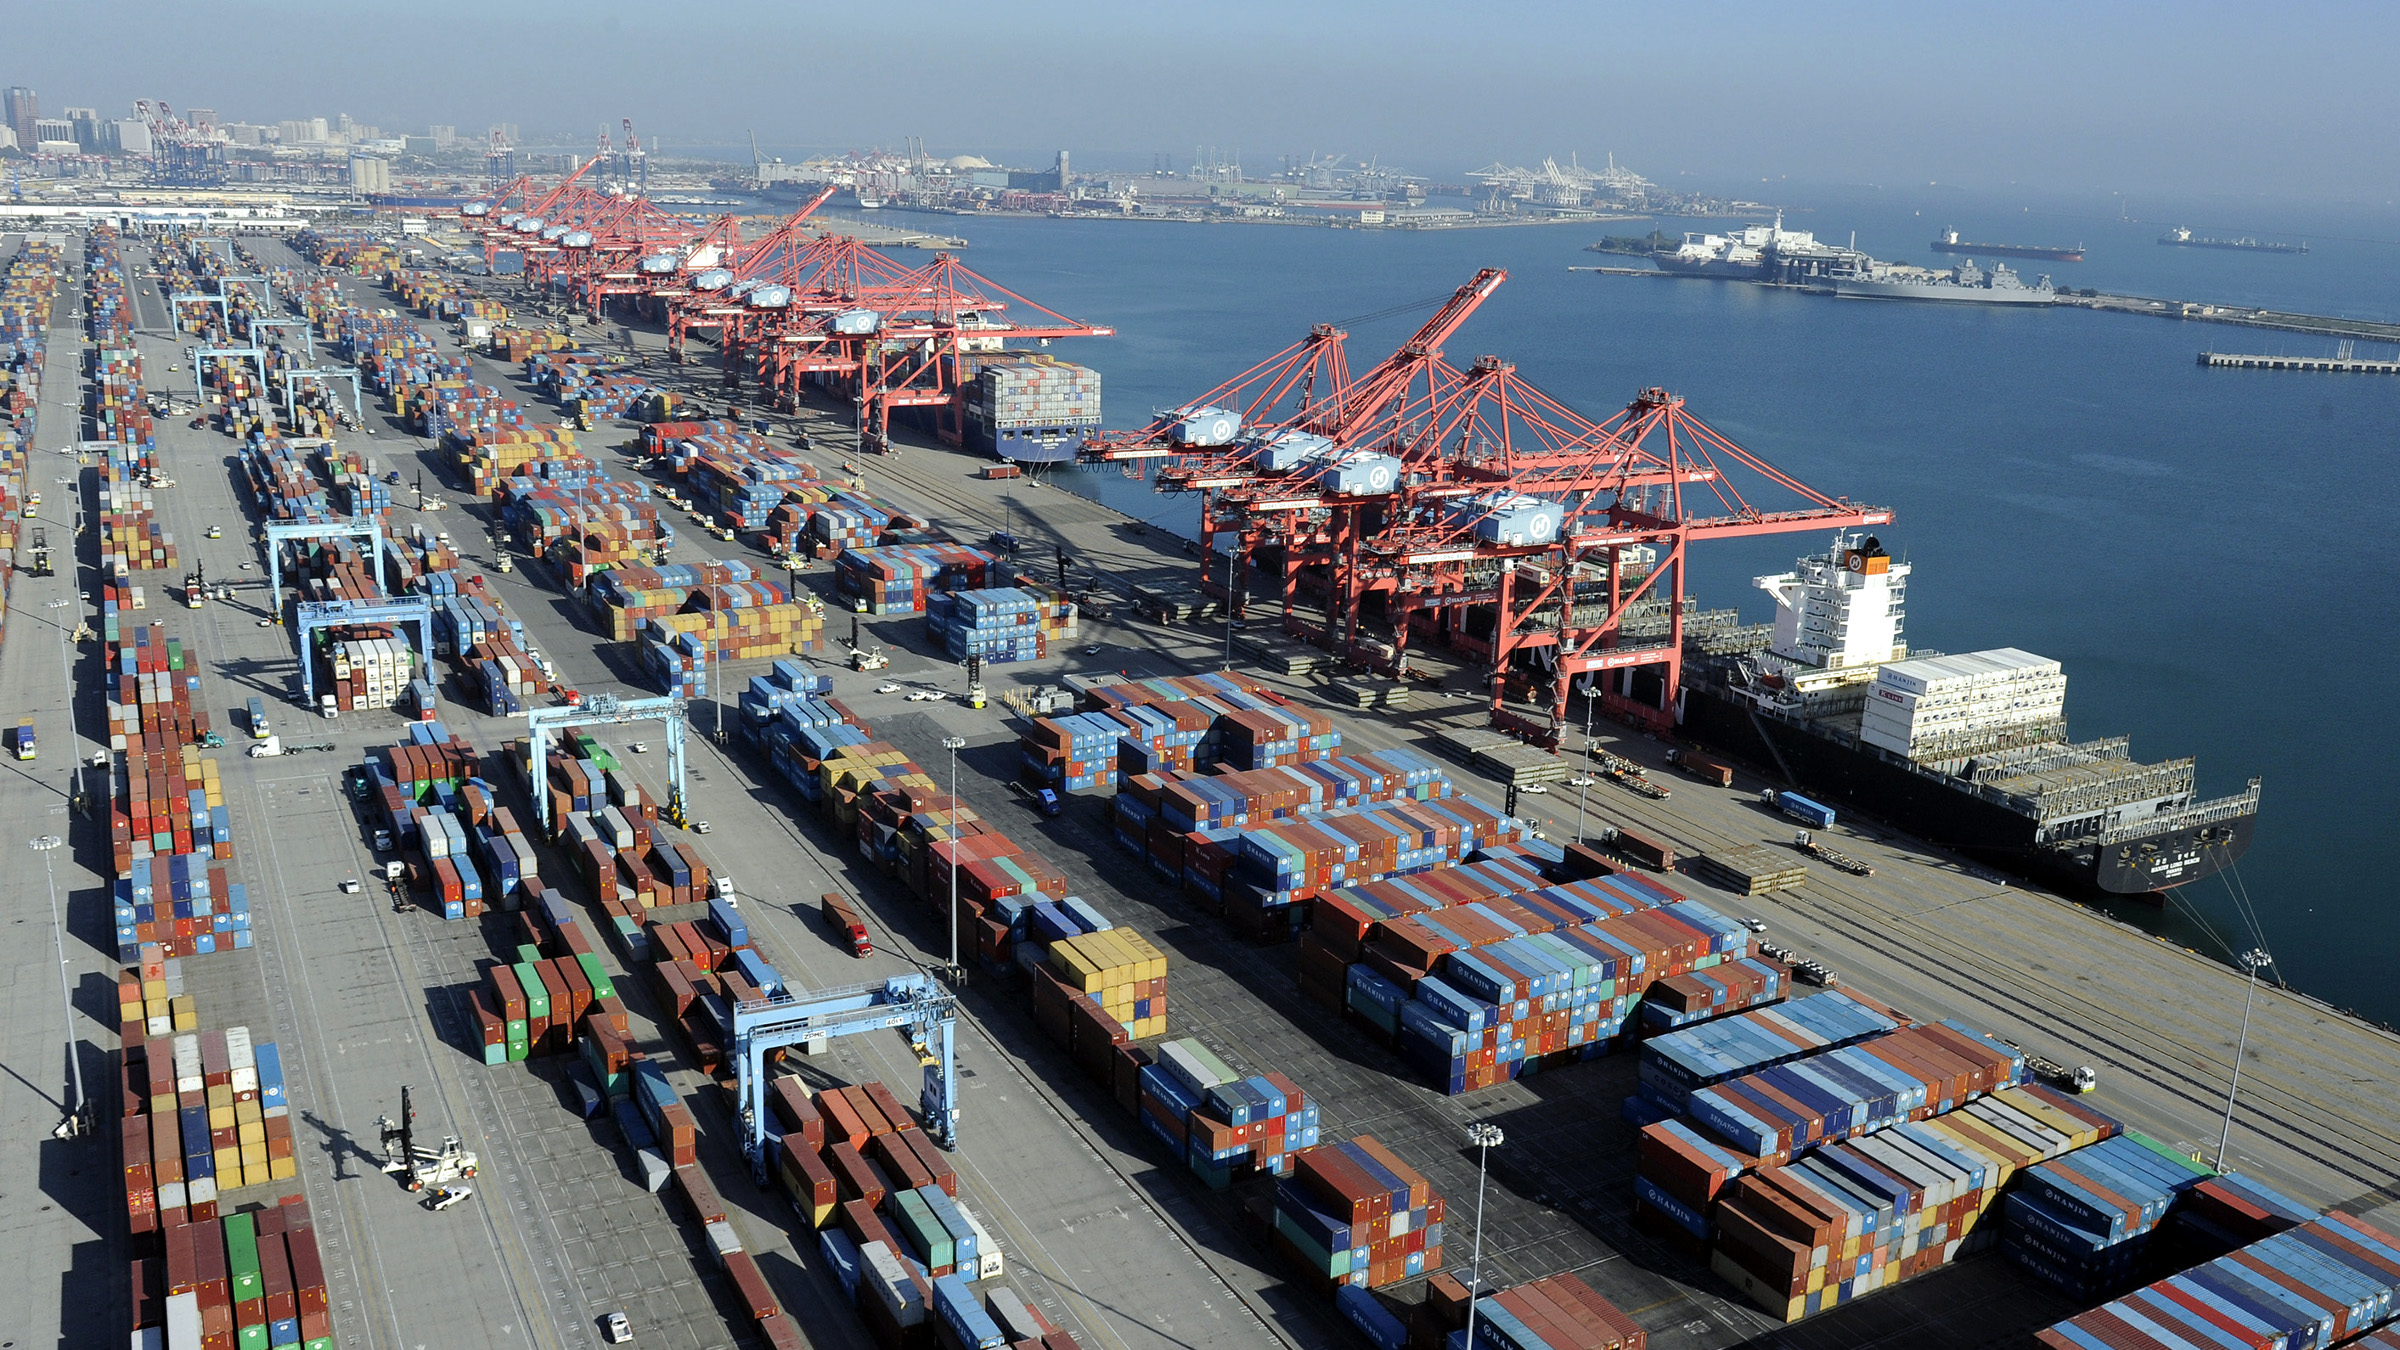 Containers and ships sit idle at the Port of Long Beach, California in this aerial photo taken February 6, 2015. The loading and unloading of cargo freighters has been suspended at all 29 U.S. West Coast ports this weekend because of chronic slowdowns on the docks that shippers and terminal operators have blamed on the dockworkers' union, the companies said Friday.